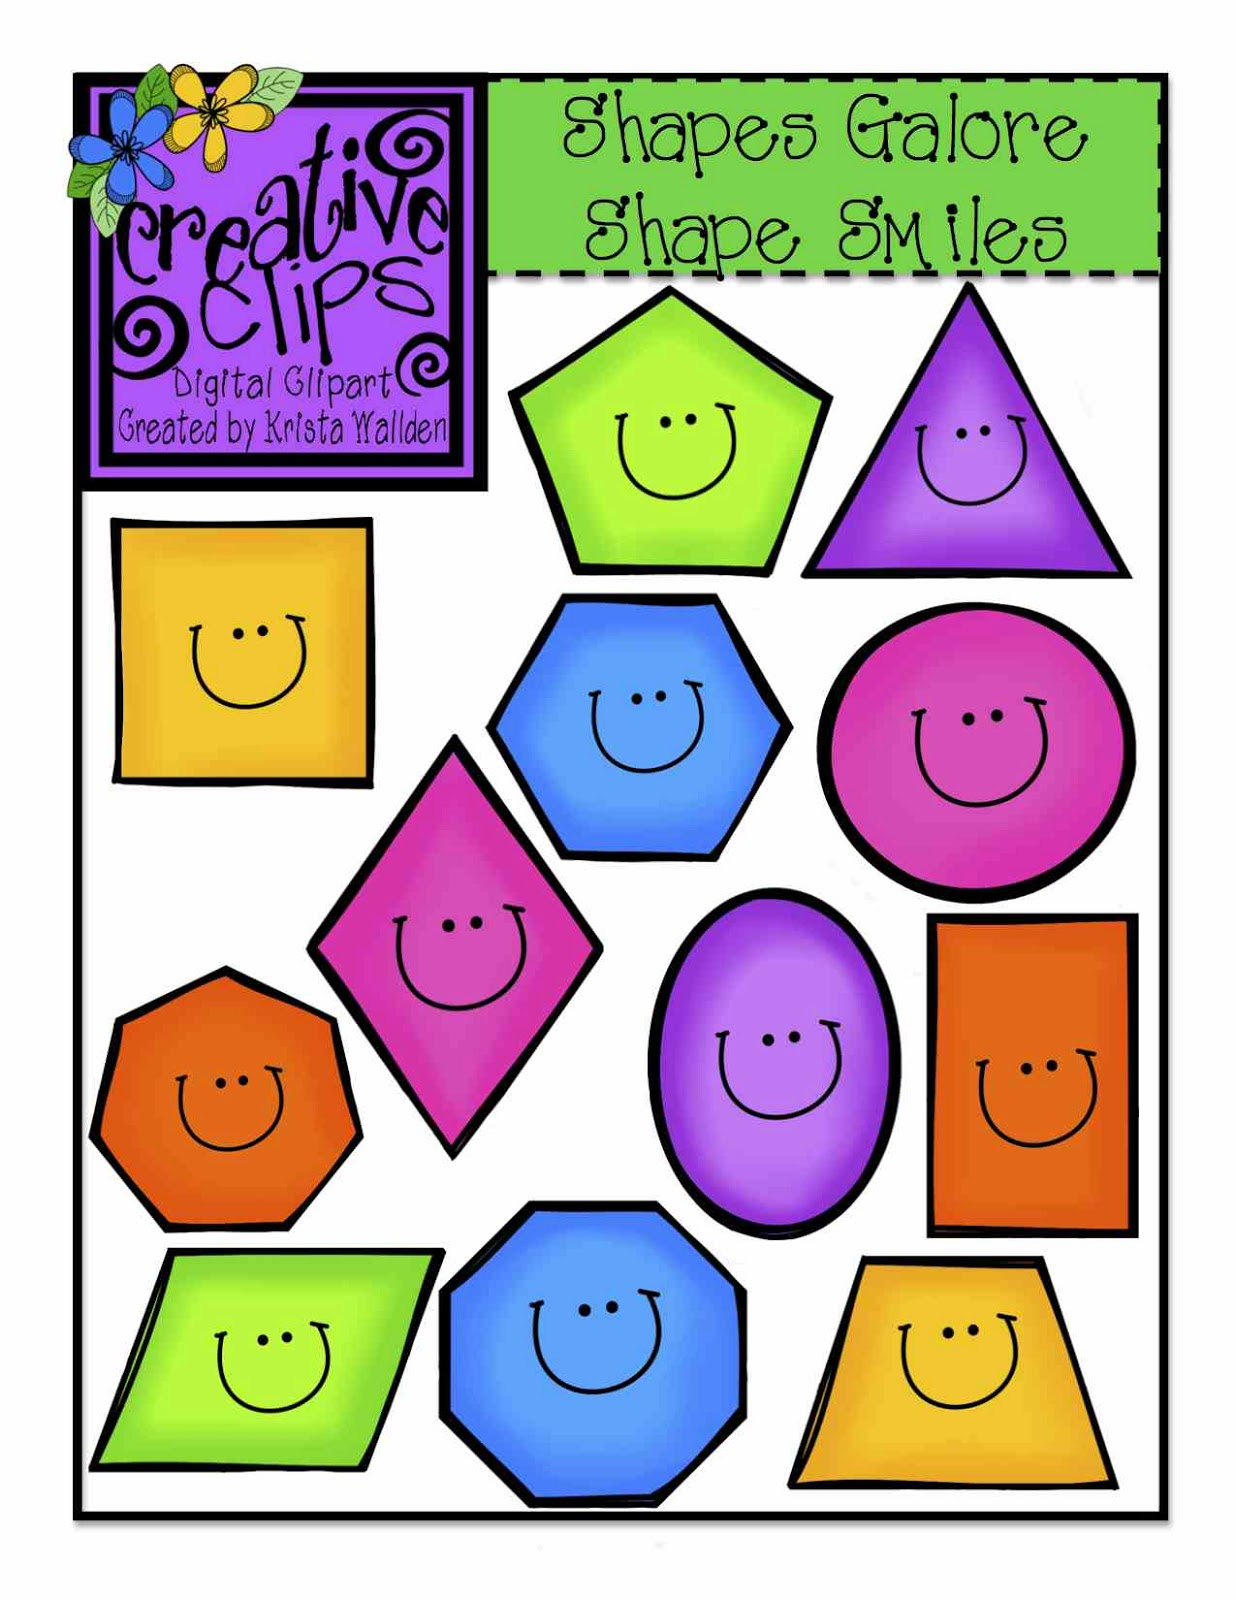 Free shapes clipart png royalty free 58+ Free Clip Art Shapes | ClipartLook png royalty free